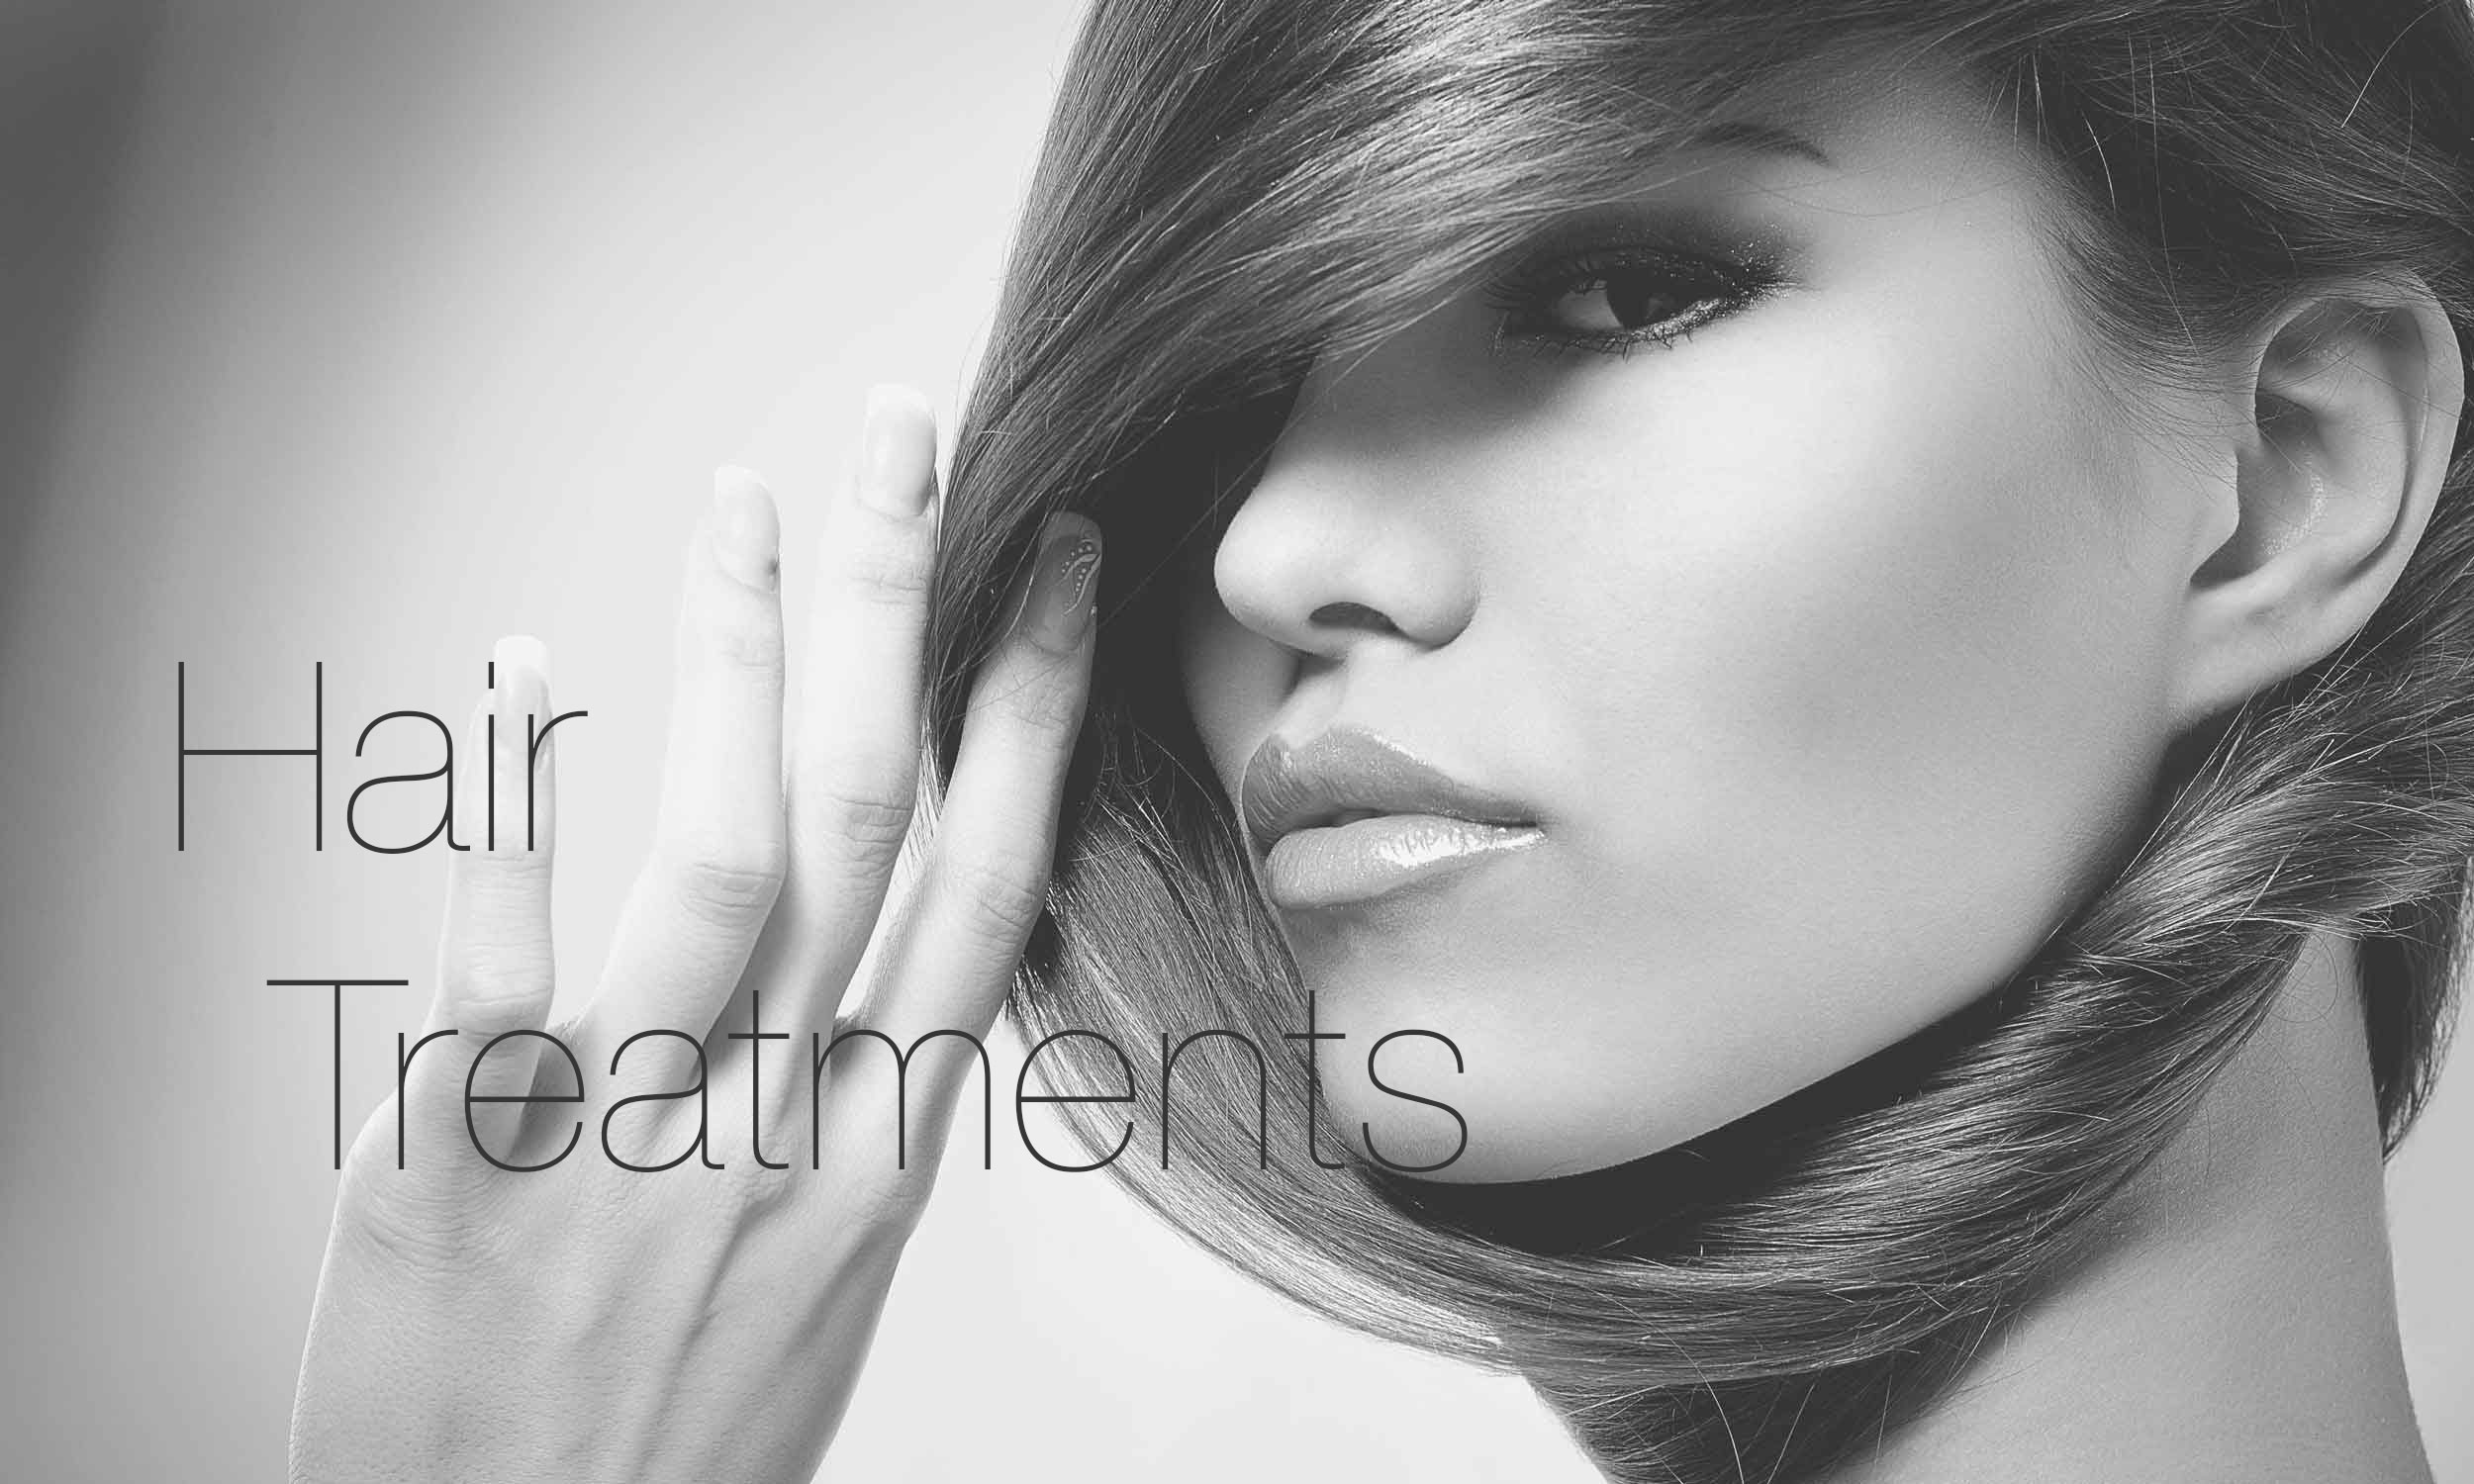 Hair Straightening & Relaxing Treatments